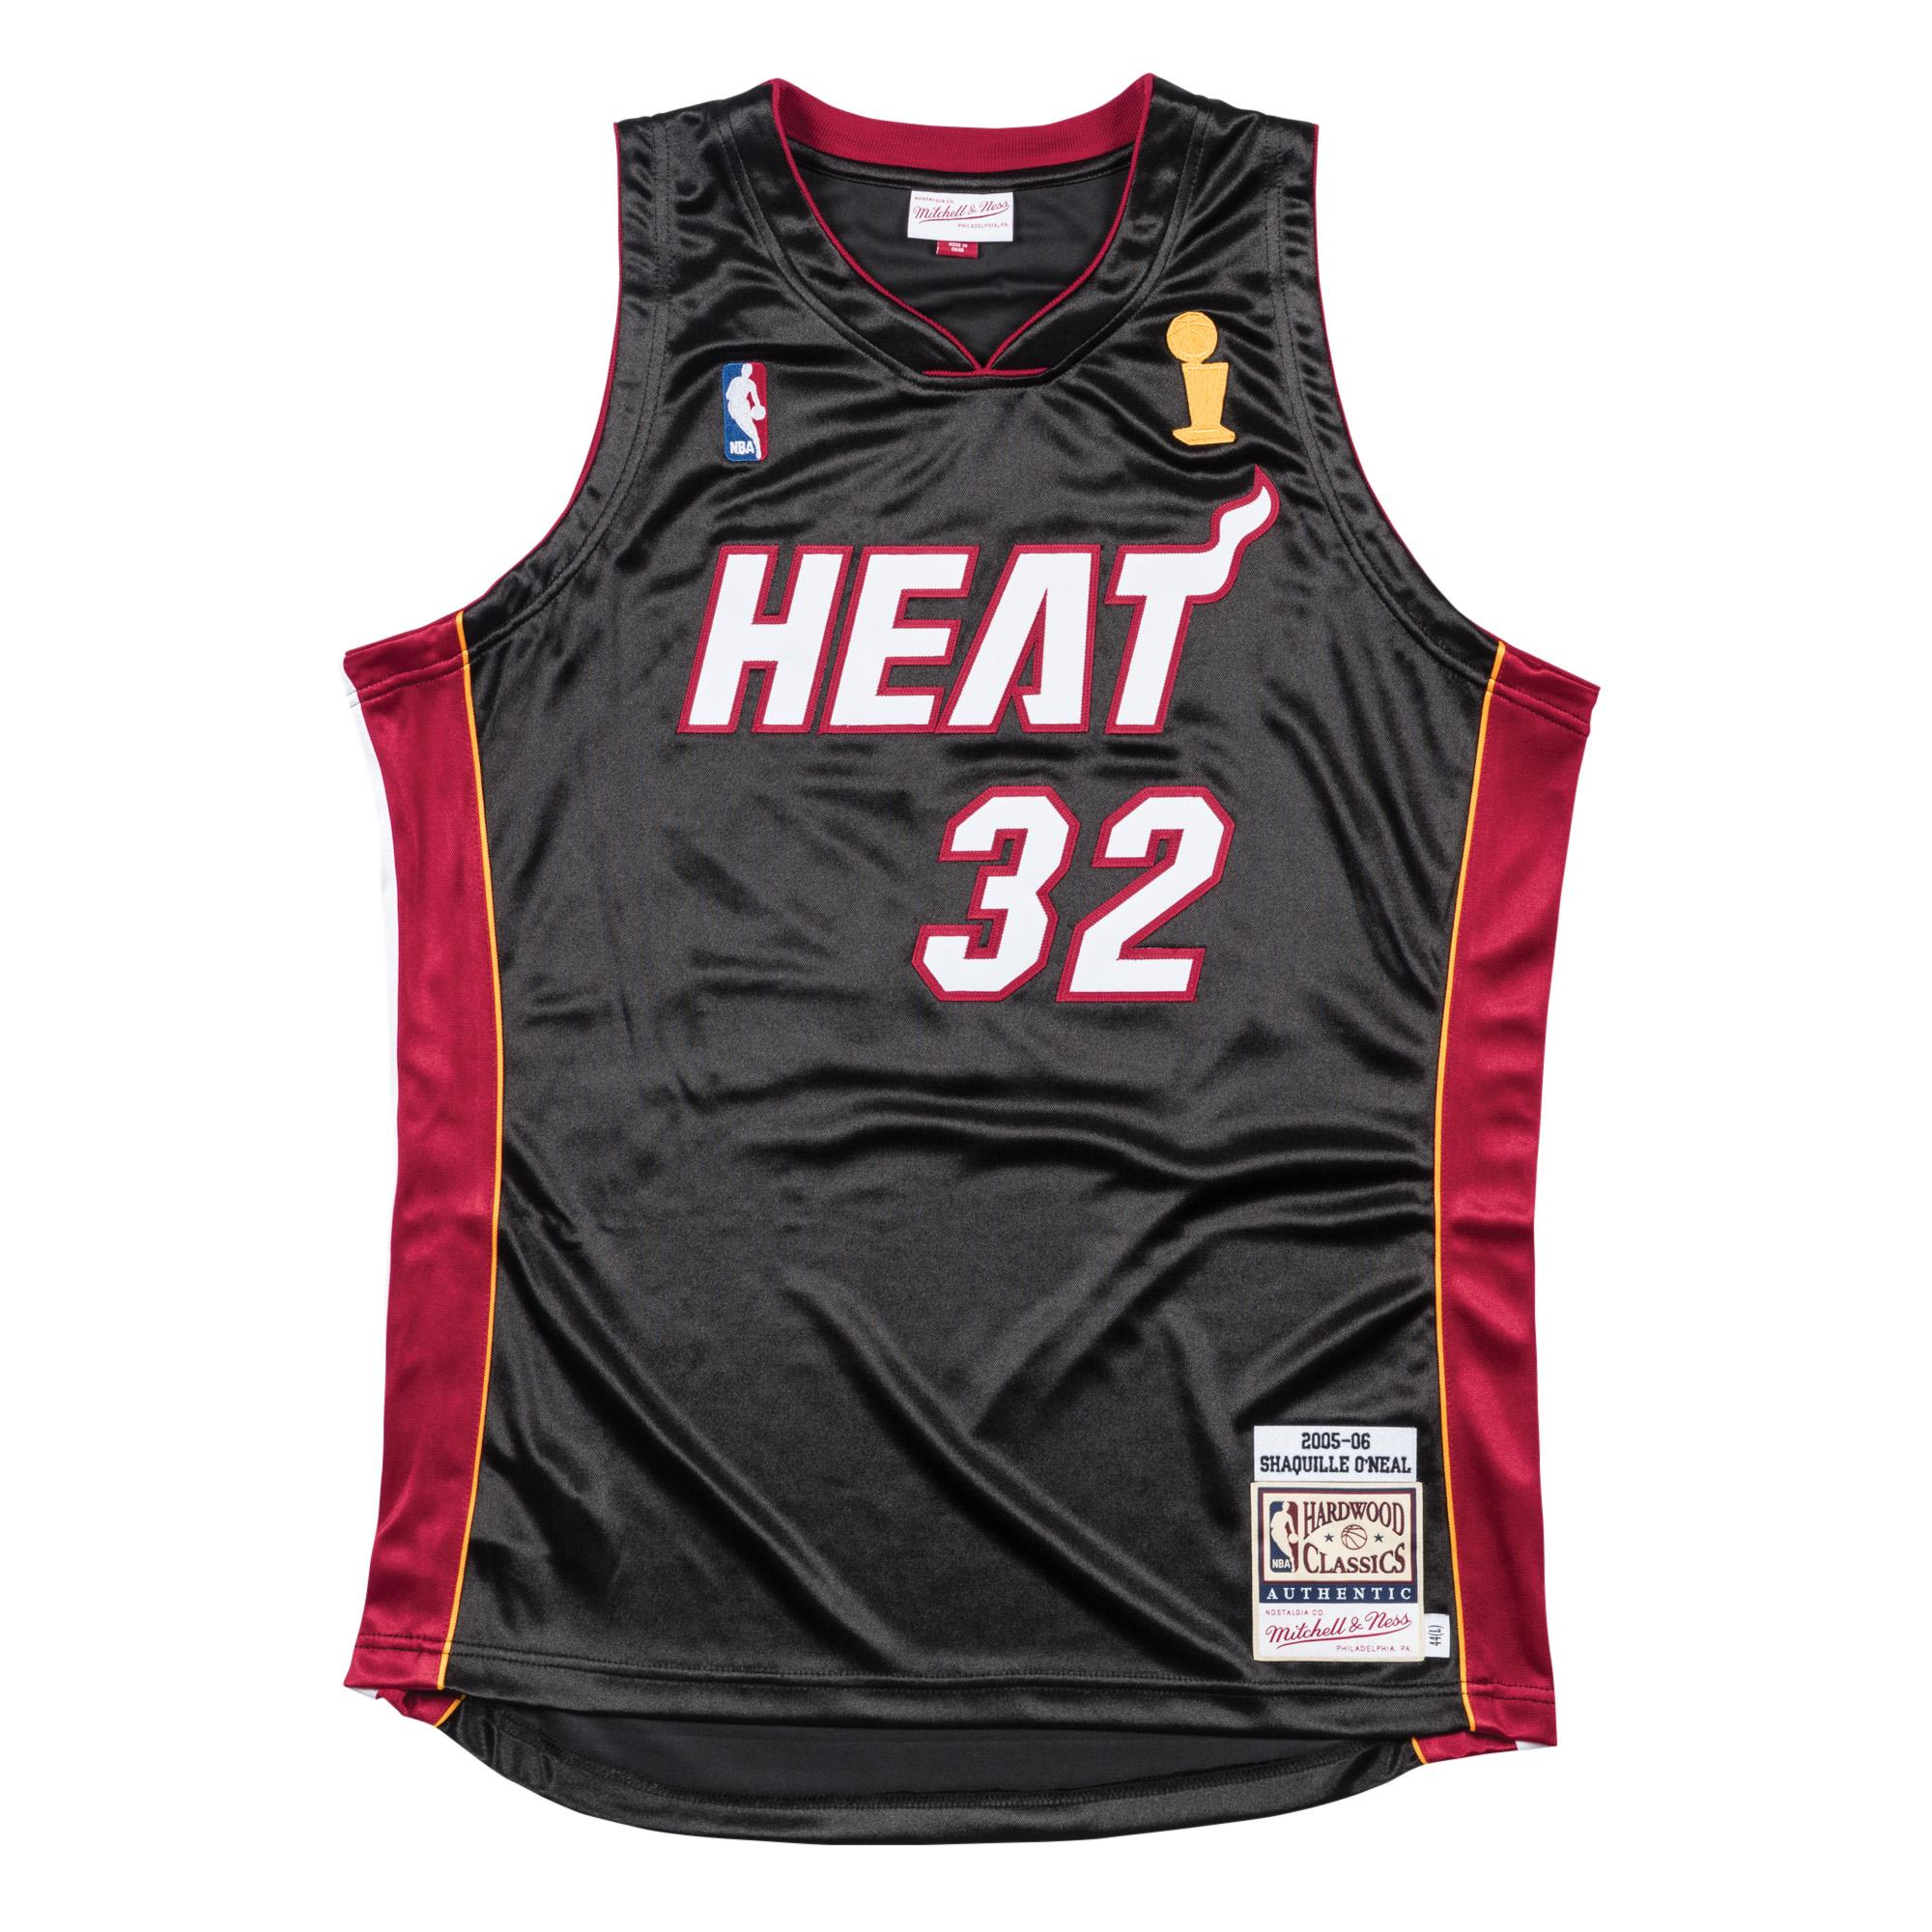 10bf3f628a6 ... O'Neal 2005-06 Road Finals Authentic Jersey Our Price: £120.00 ...